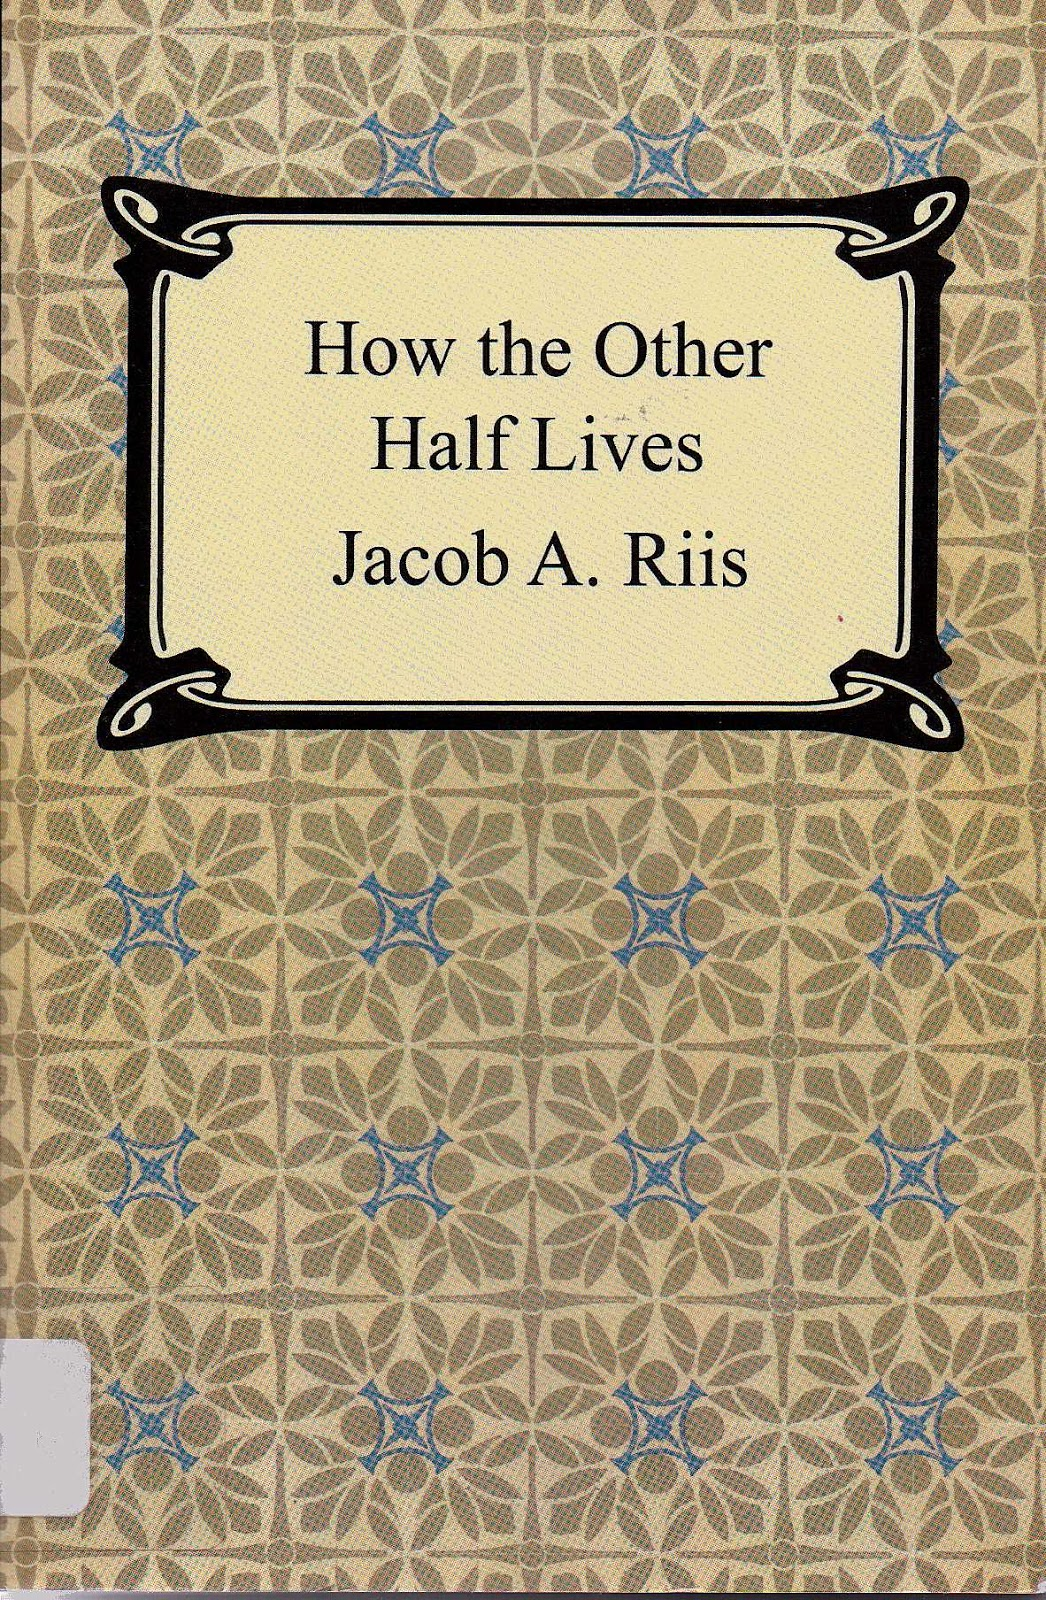 sympathy and poor judgement in jacob riis book how the other half lives He lives in santa cruz with his wife,  the second half of the book is about the origins of higher education in america,  jacob burckhardt saw what was coming.